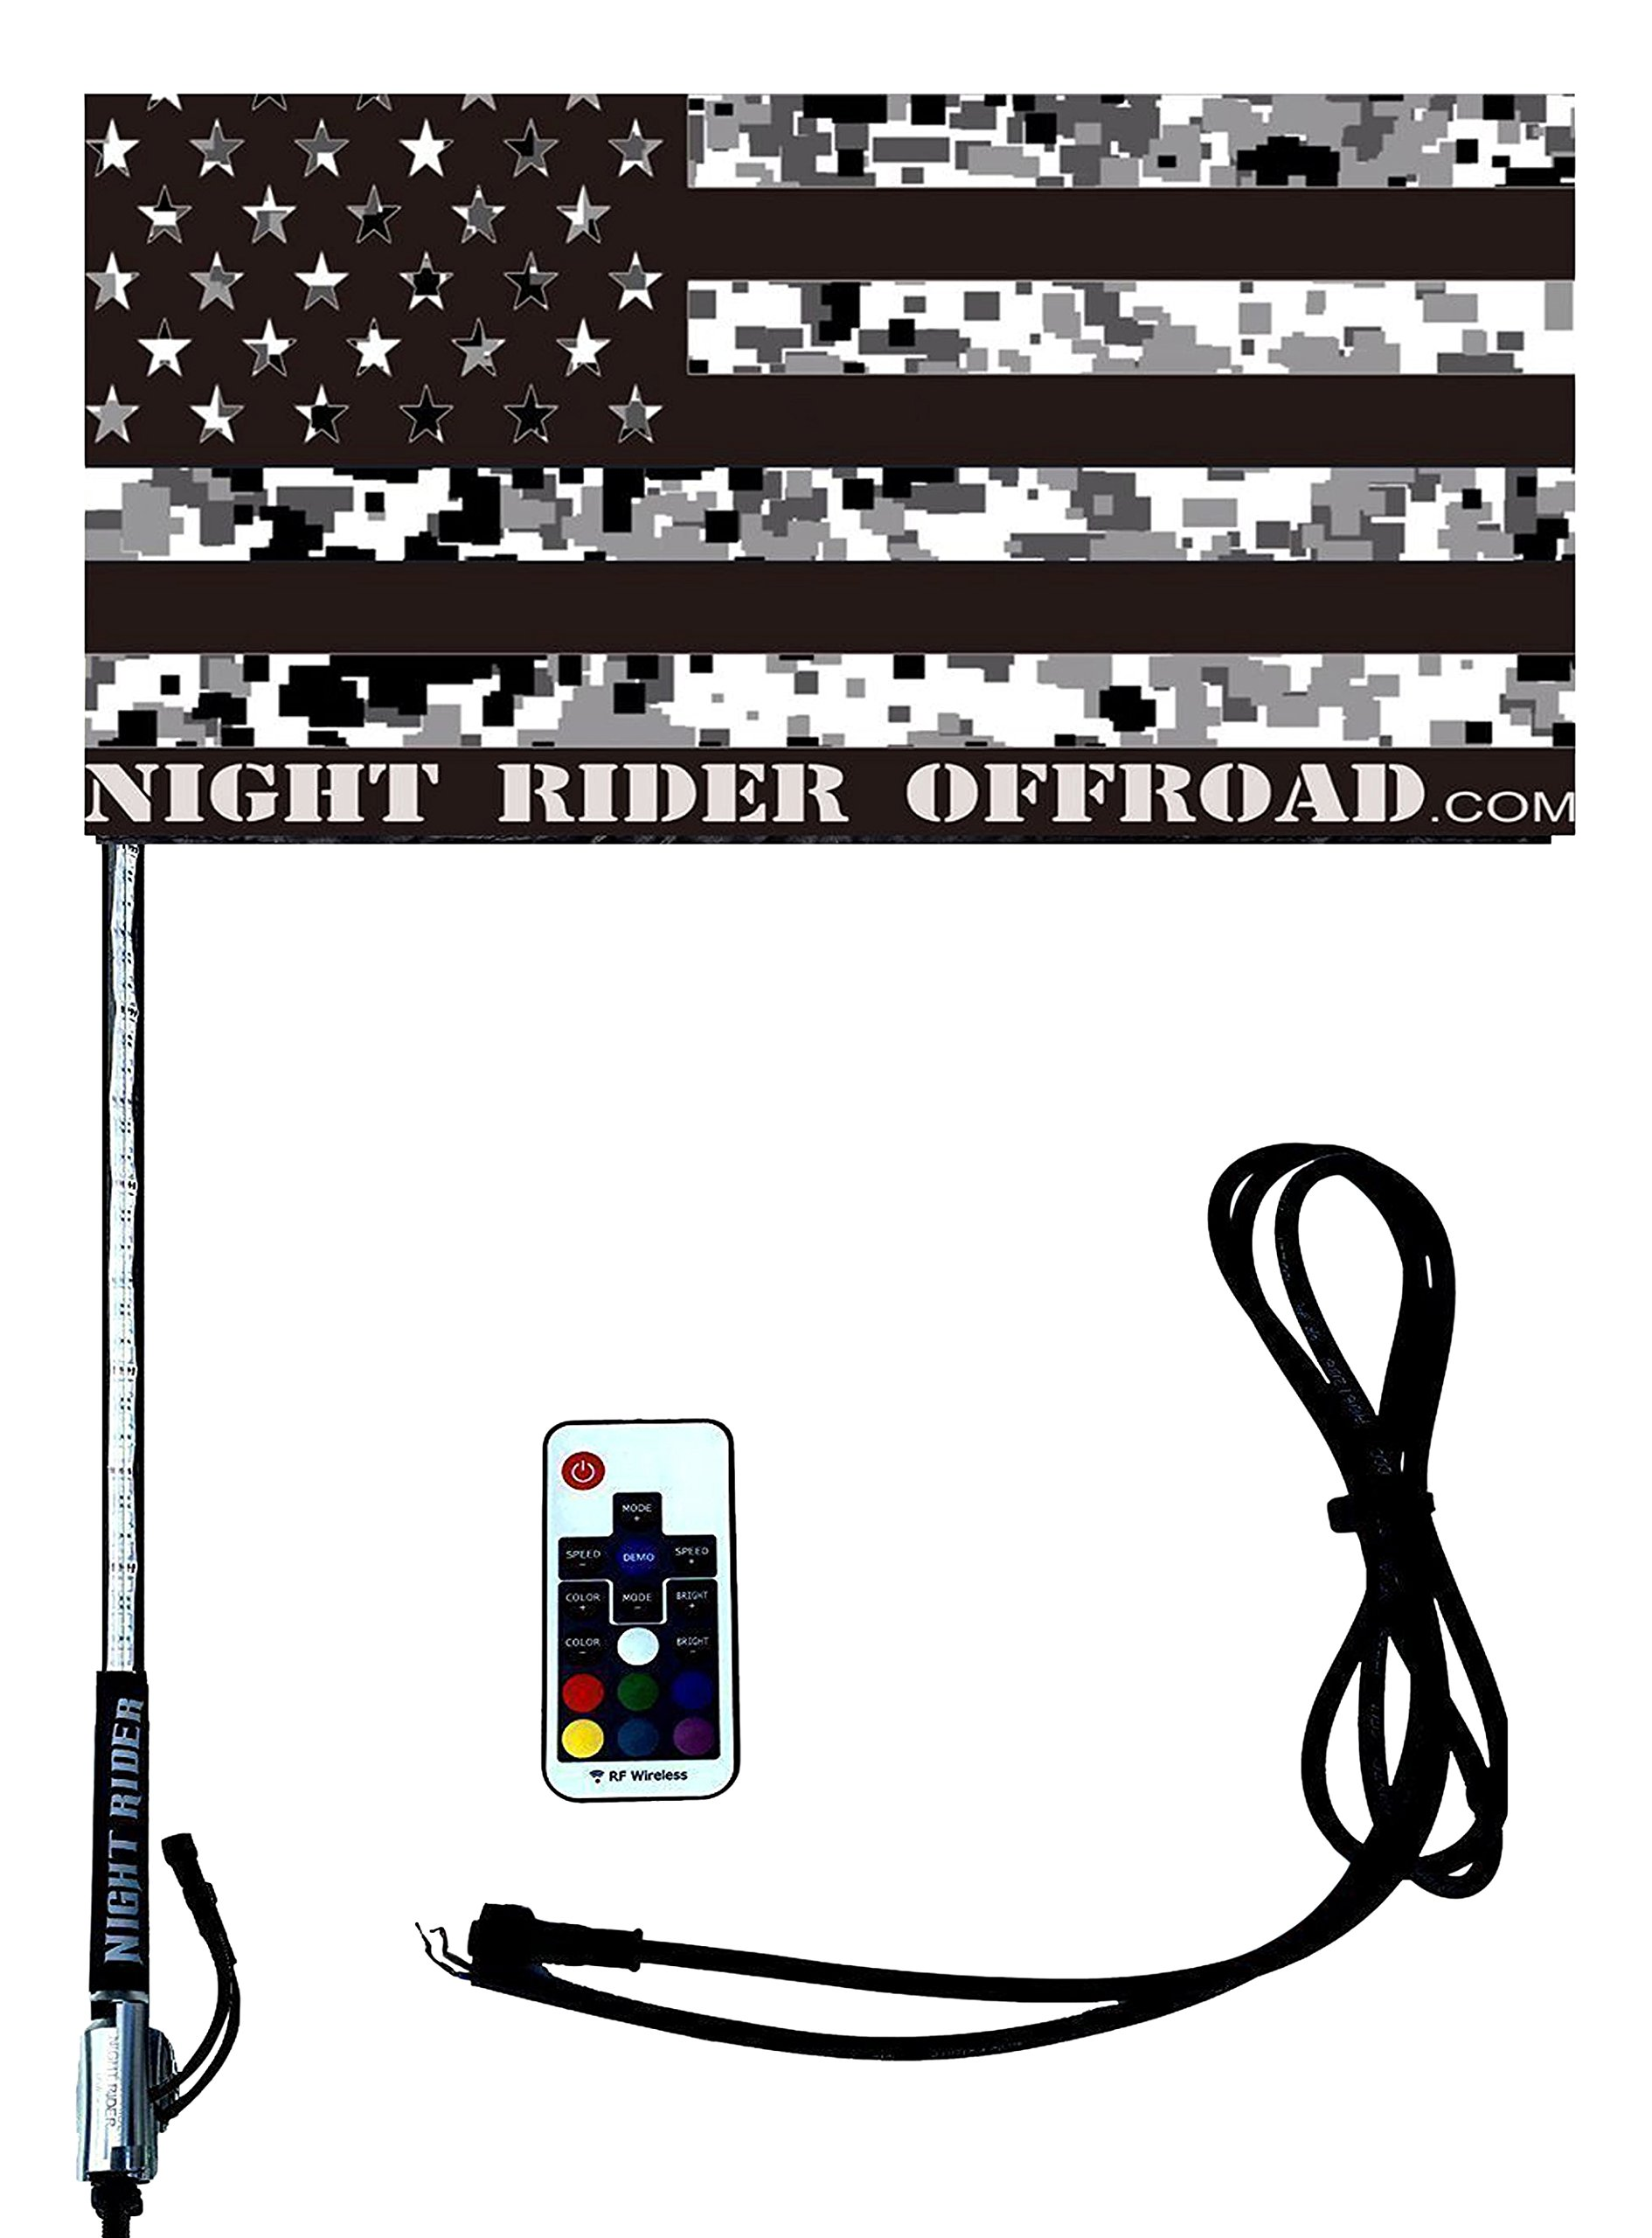 Amazon.com: Night Rider--4' RGB 200 LED Light Whip w/ Safety Flag with Wiring  Harness: Automotive